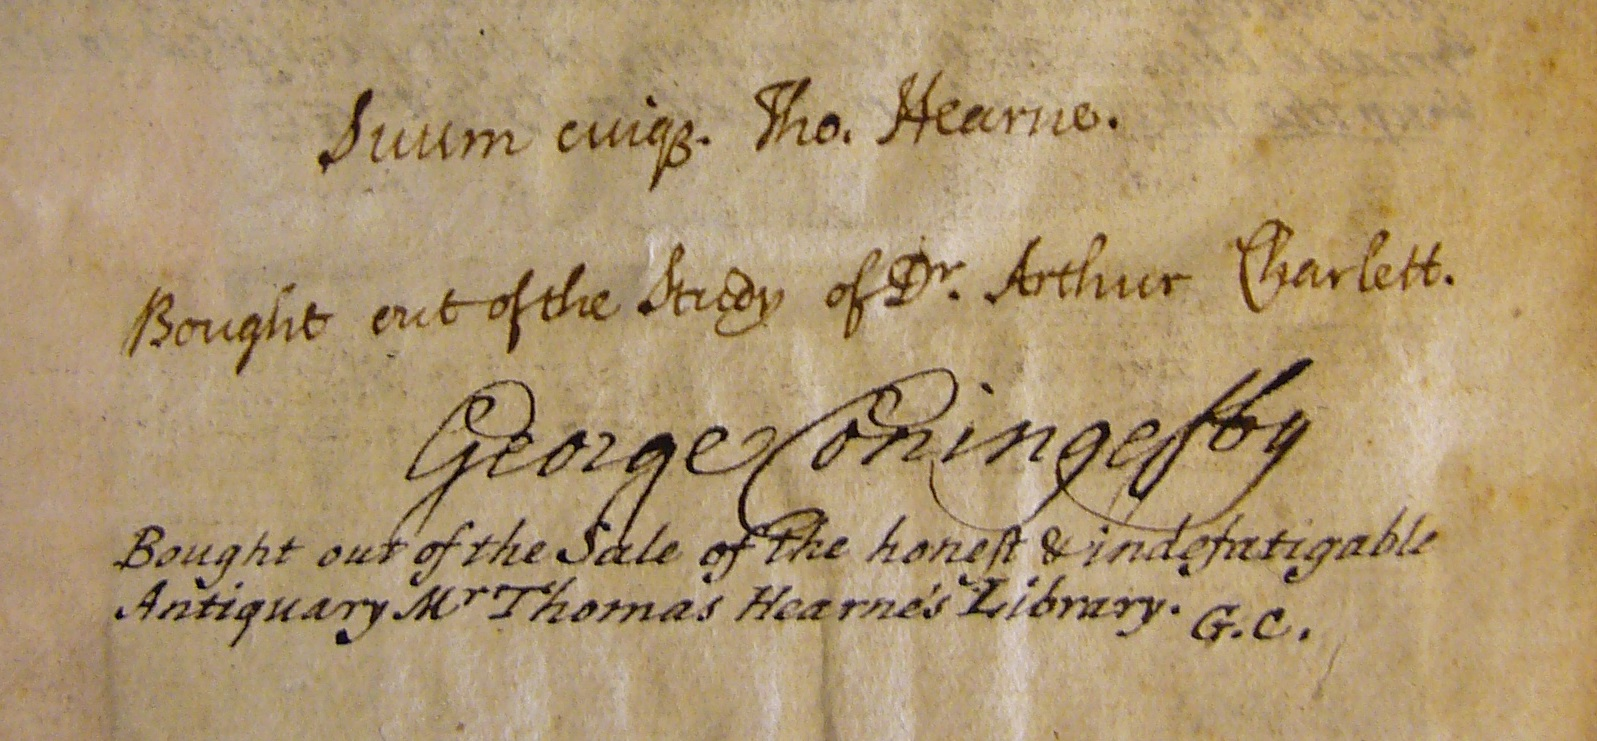 Thomas Hearne's ownership inscription in a book later acquired by Coningesby.